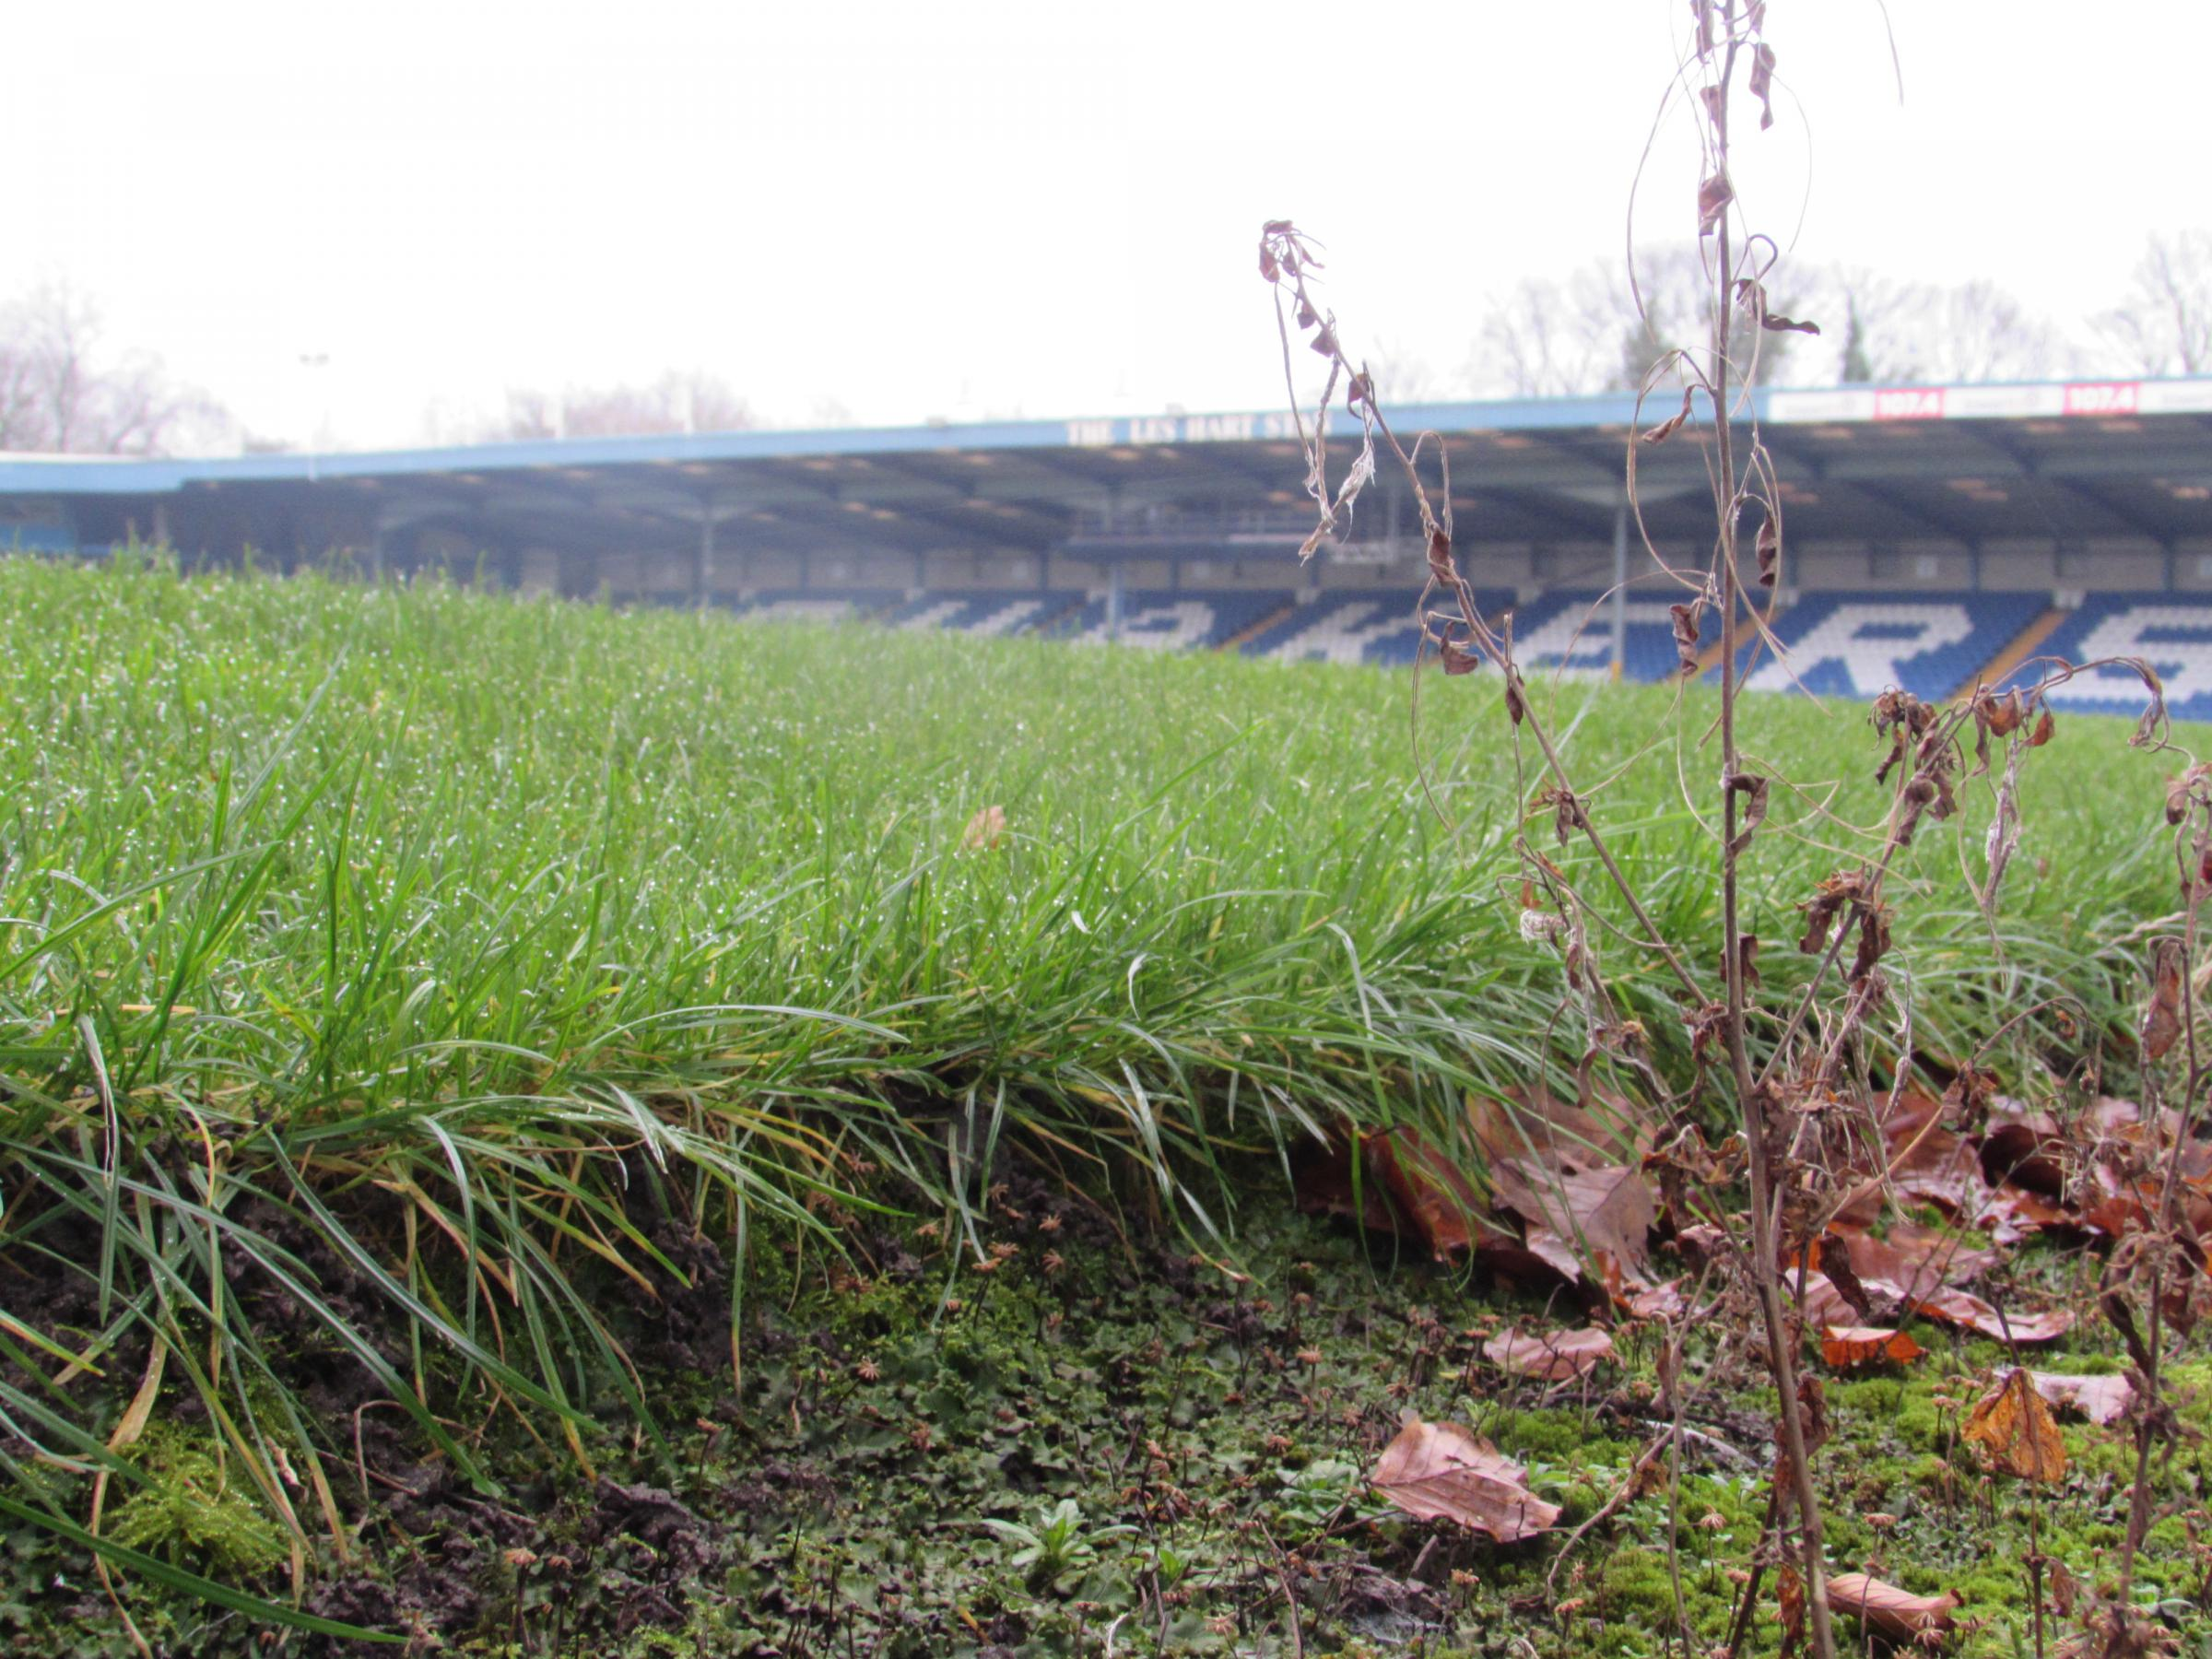 Bury FC fan on Gigg Lane heartbreak as Shakers takeover looms